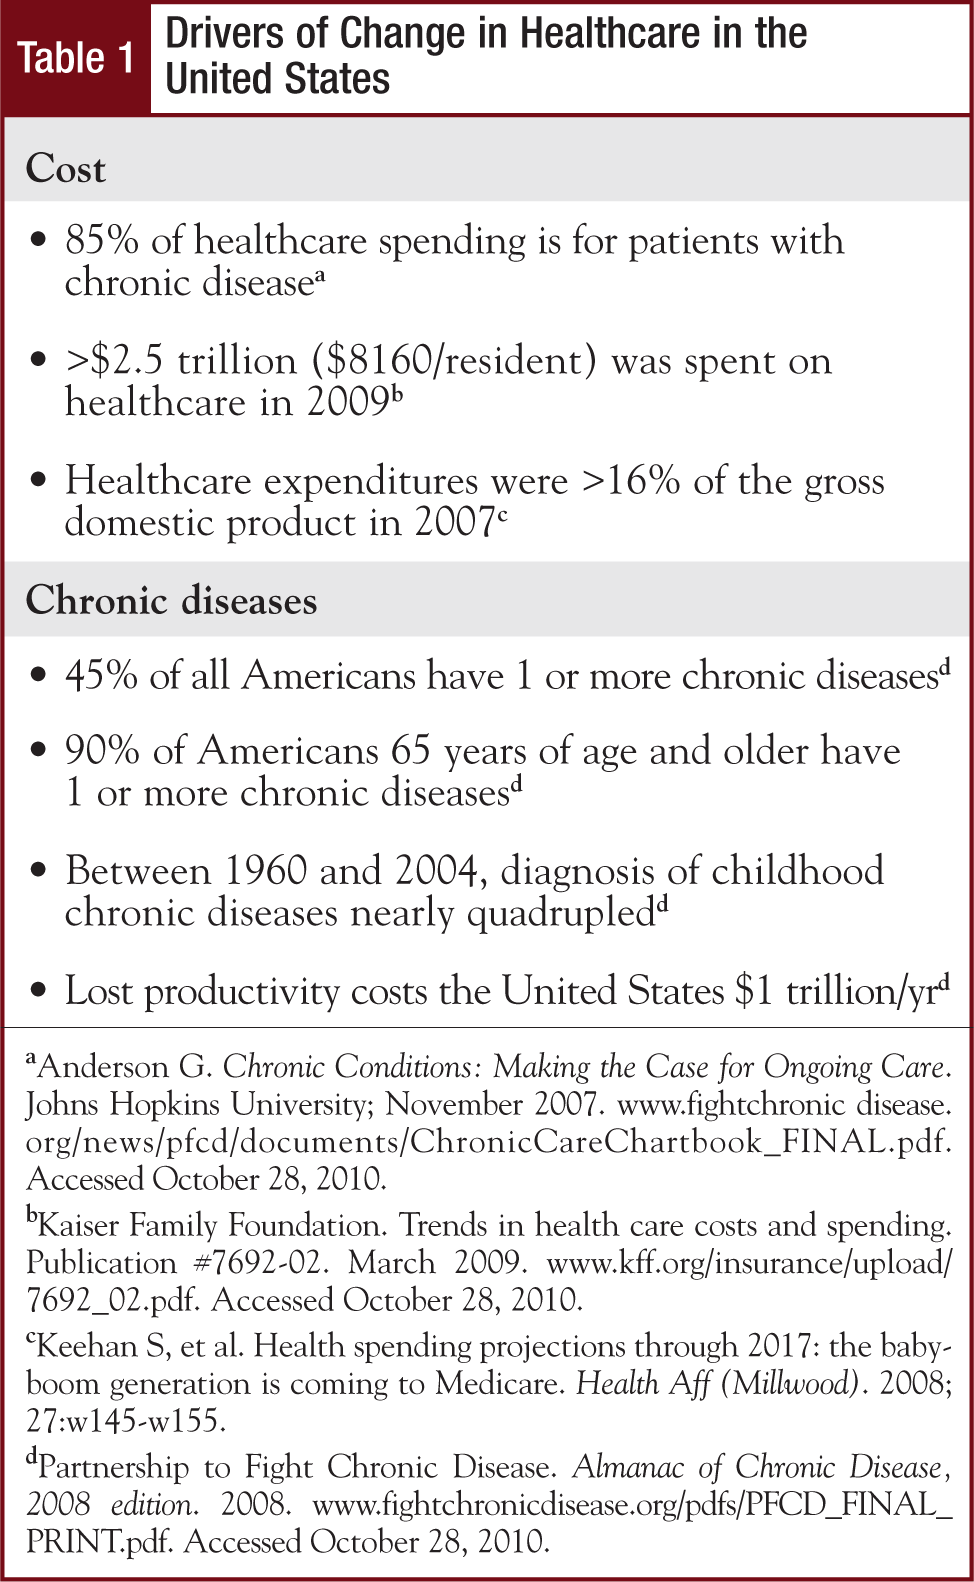 Table 1 - Drivers of Change in Healthcare in the